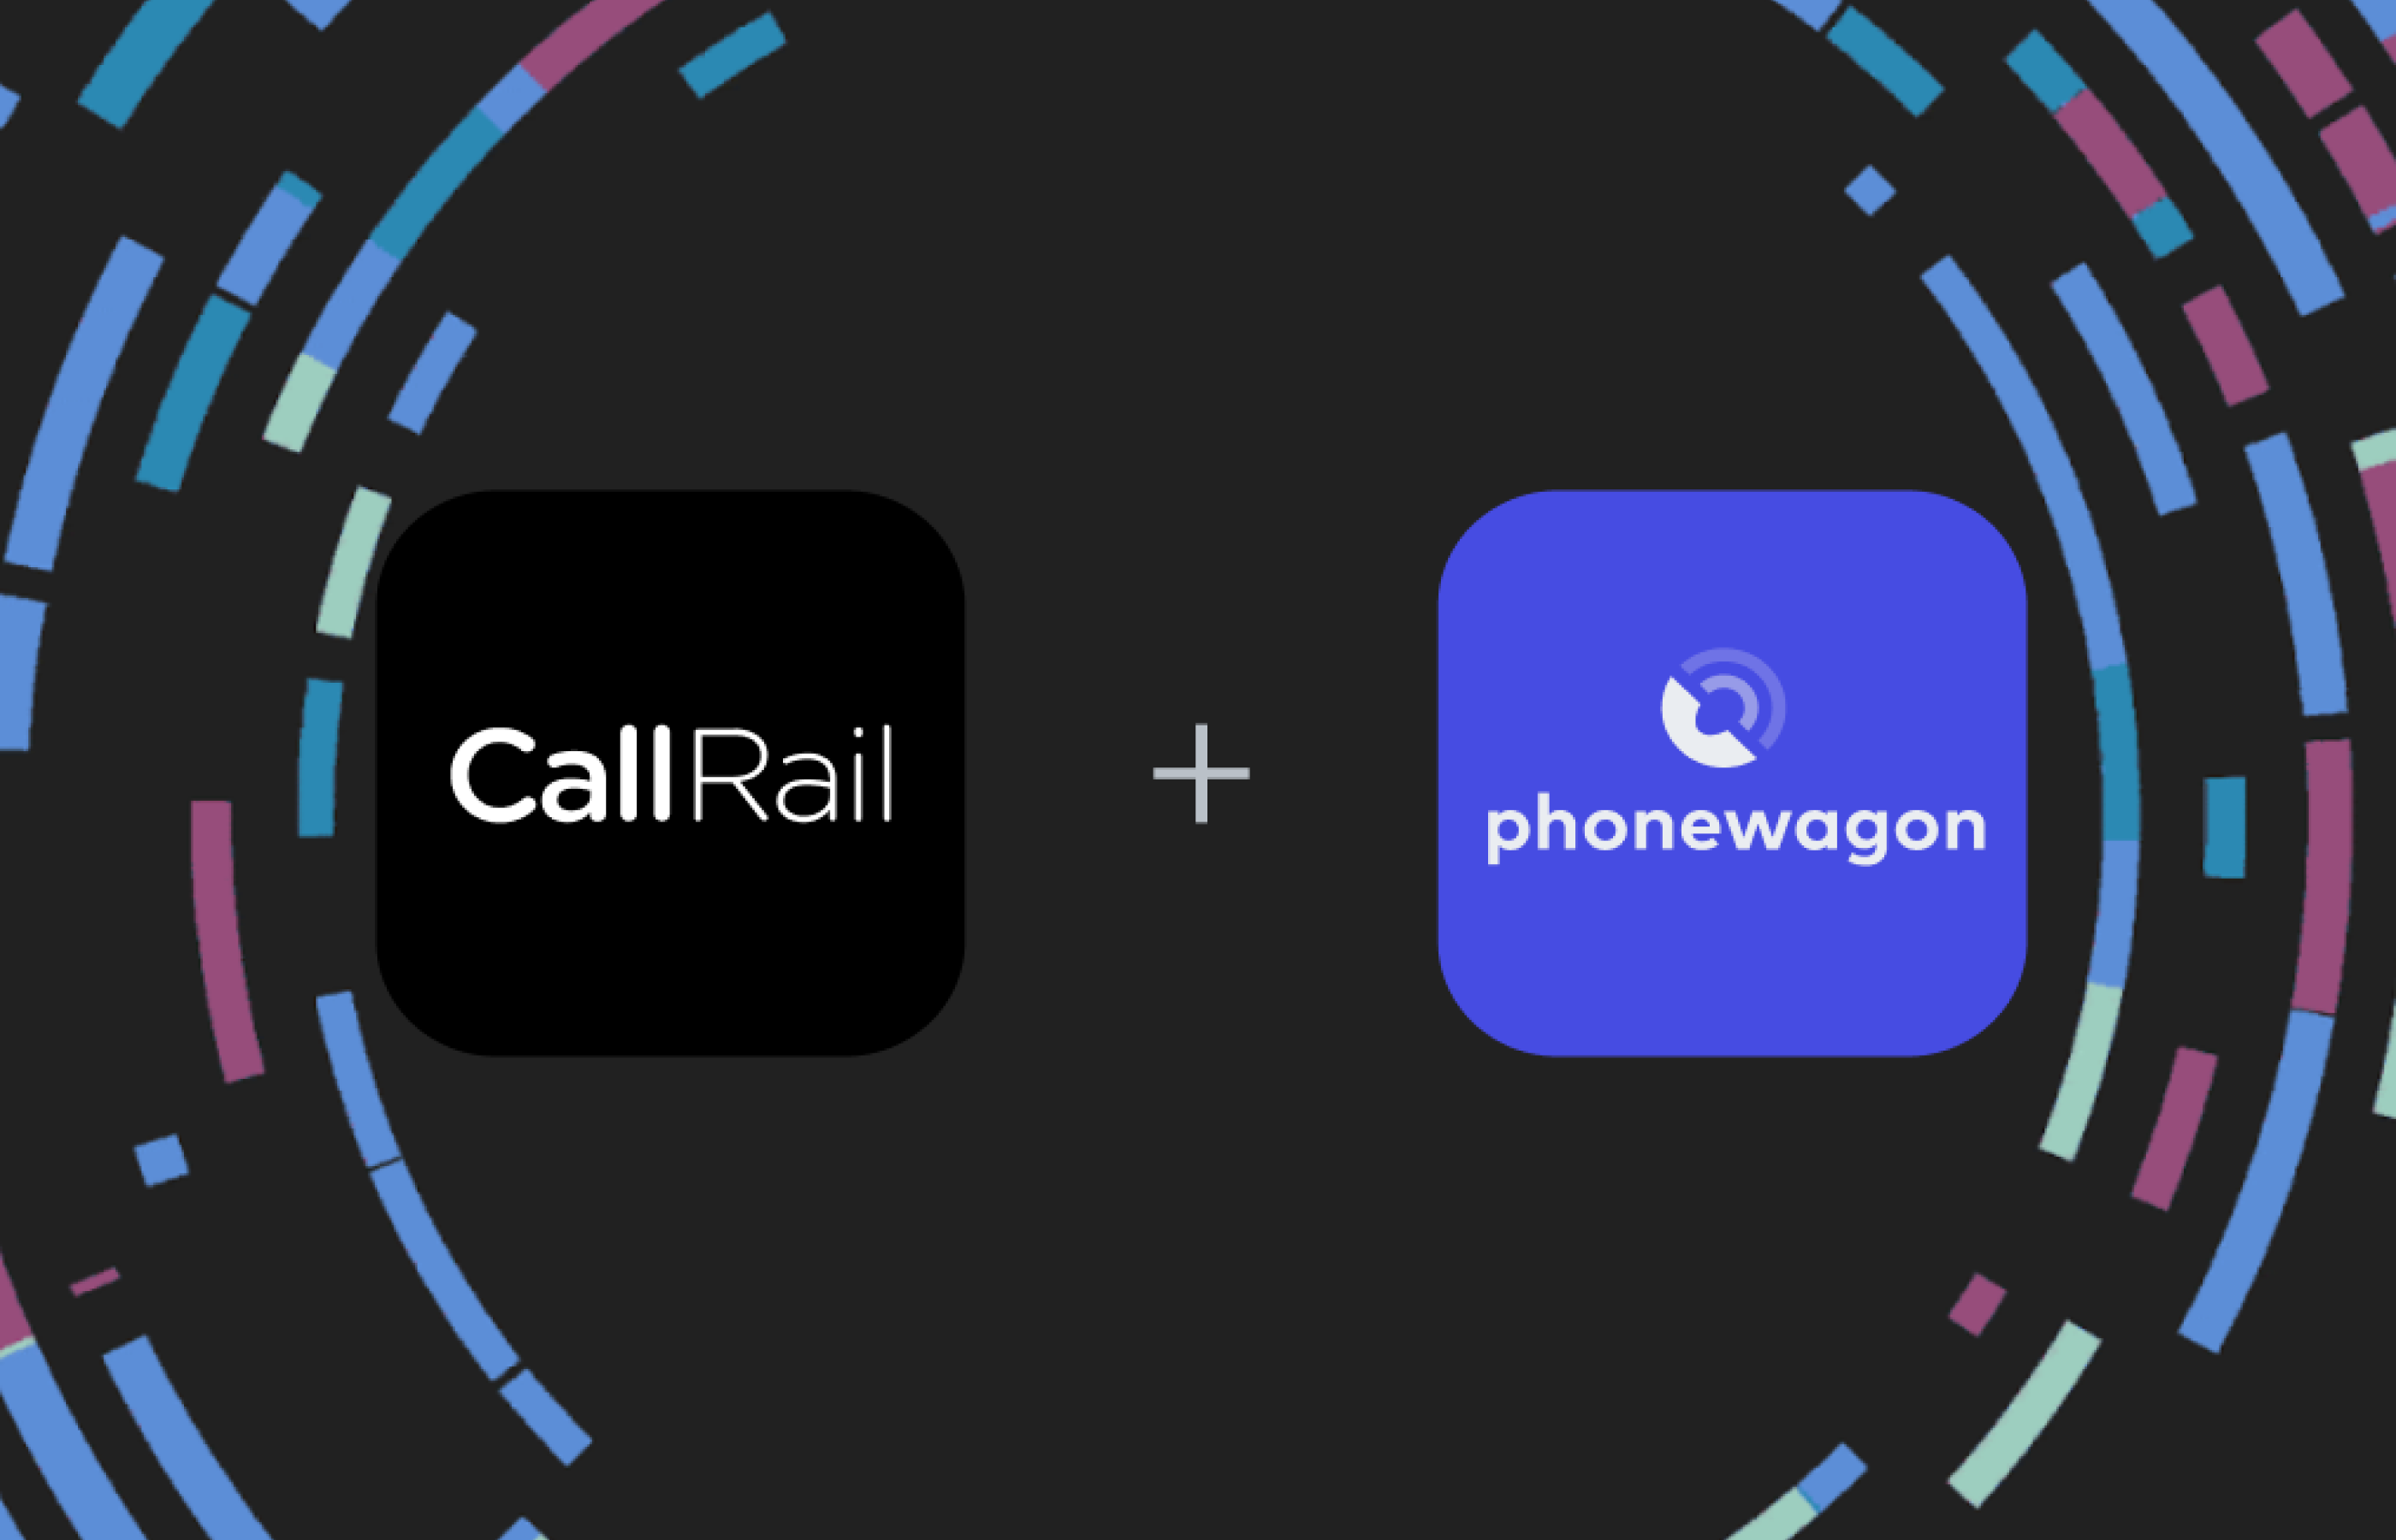 CallRail acquires PhoneWagon, extending leadership position in call tracking software